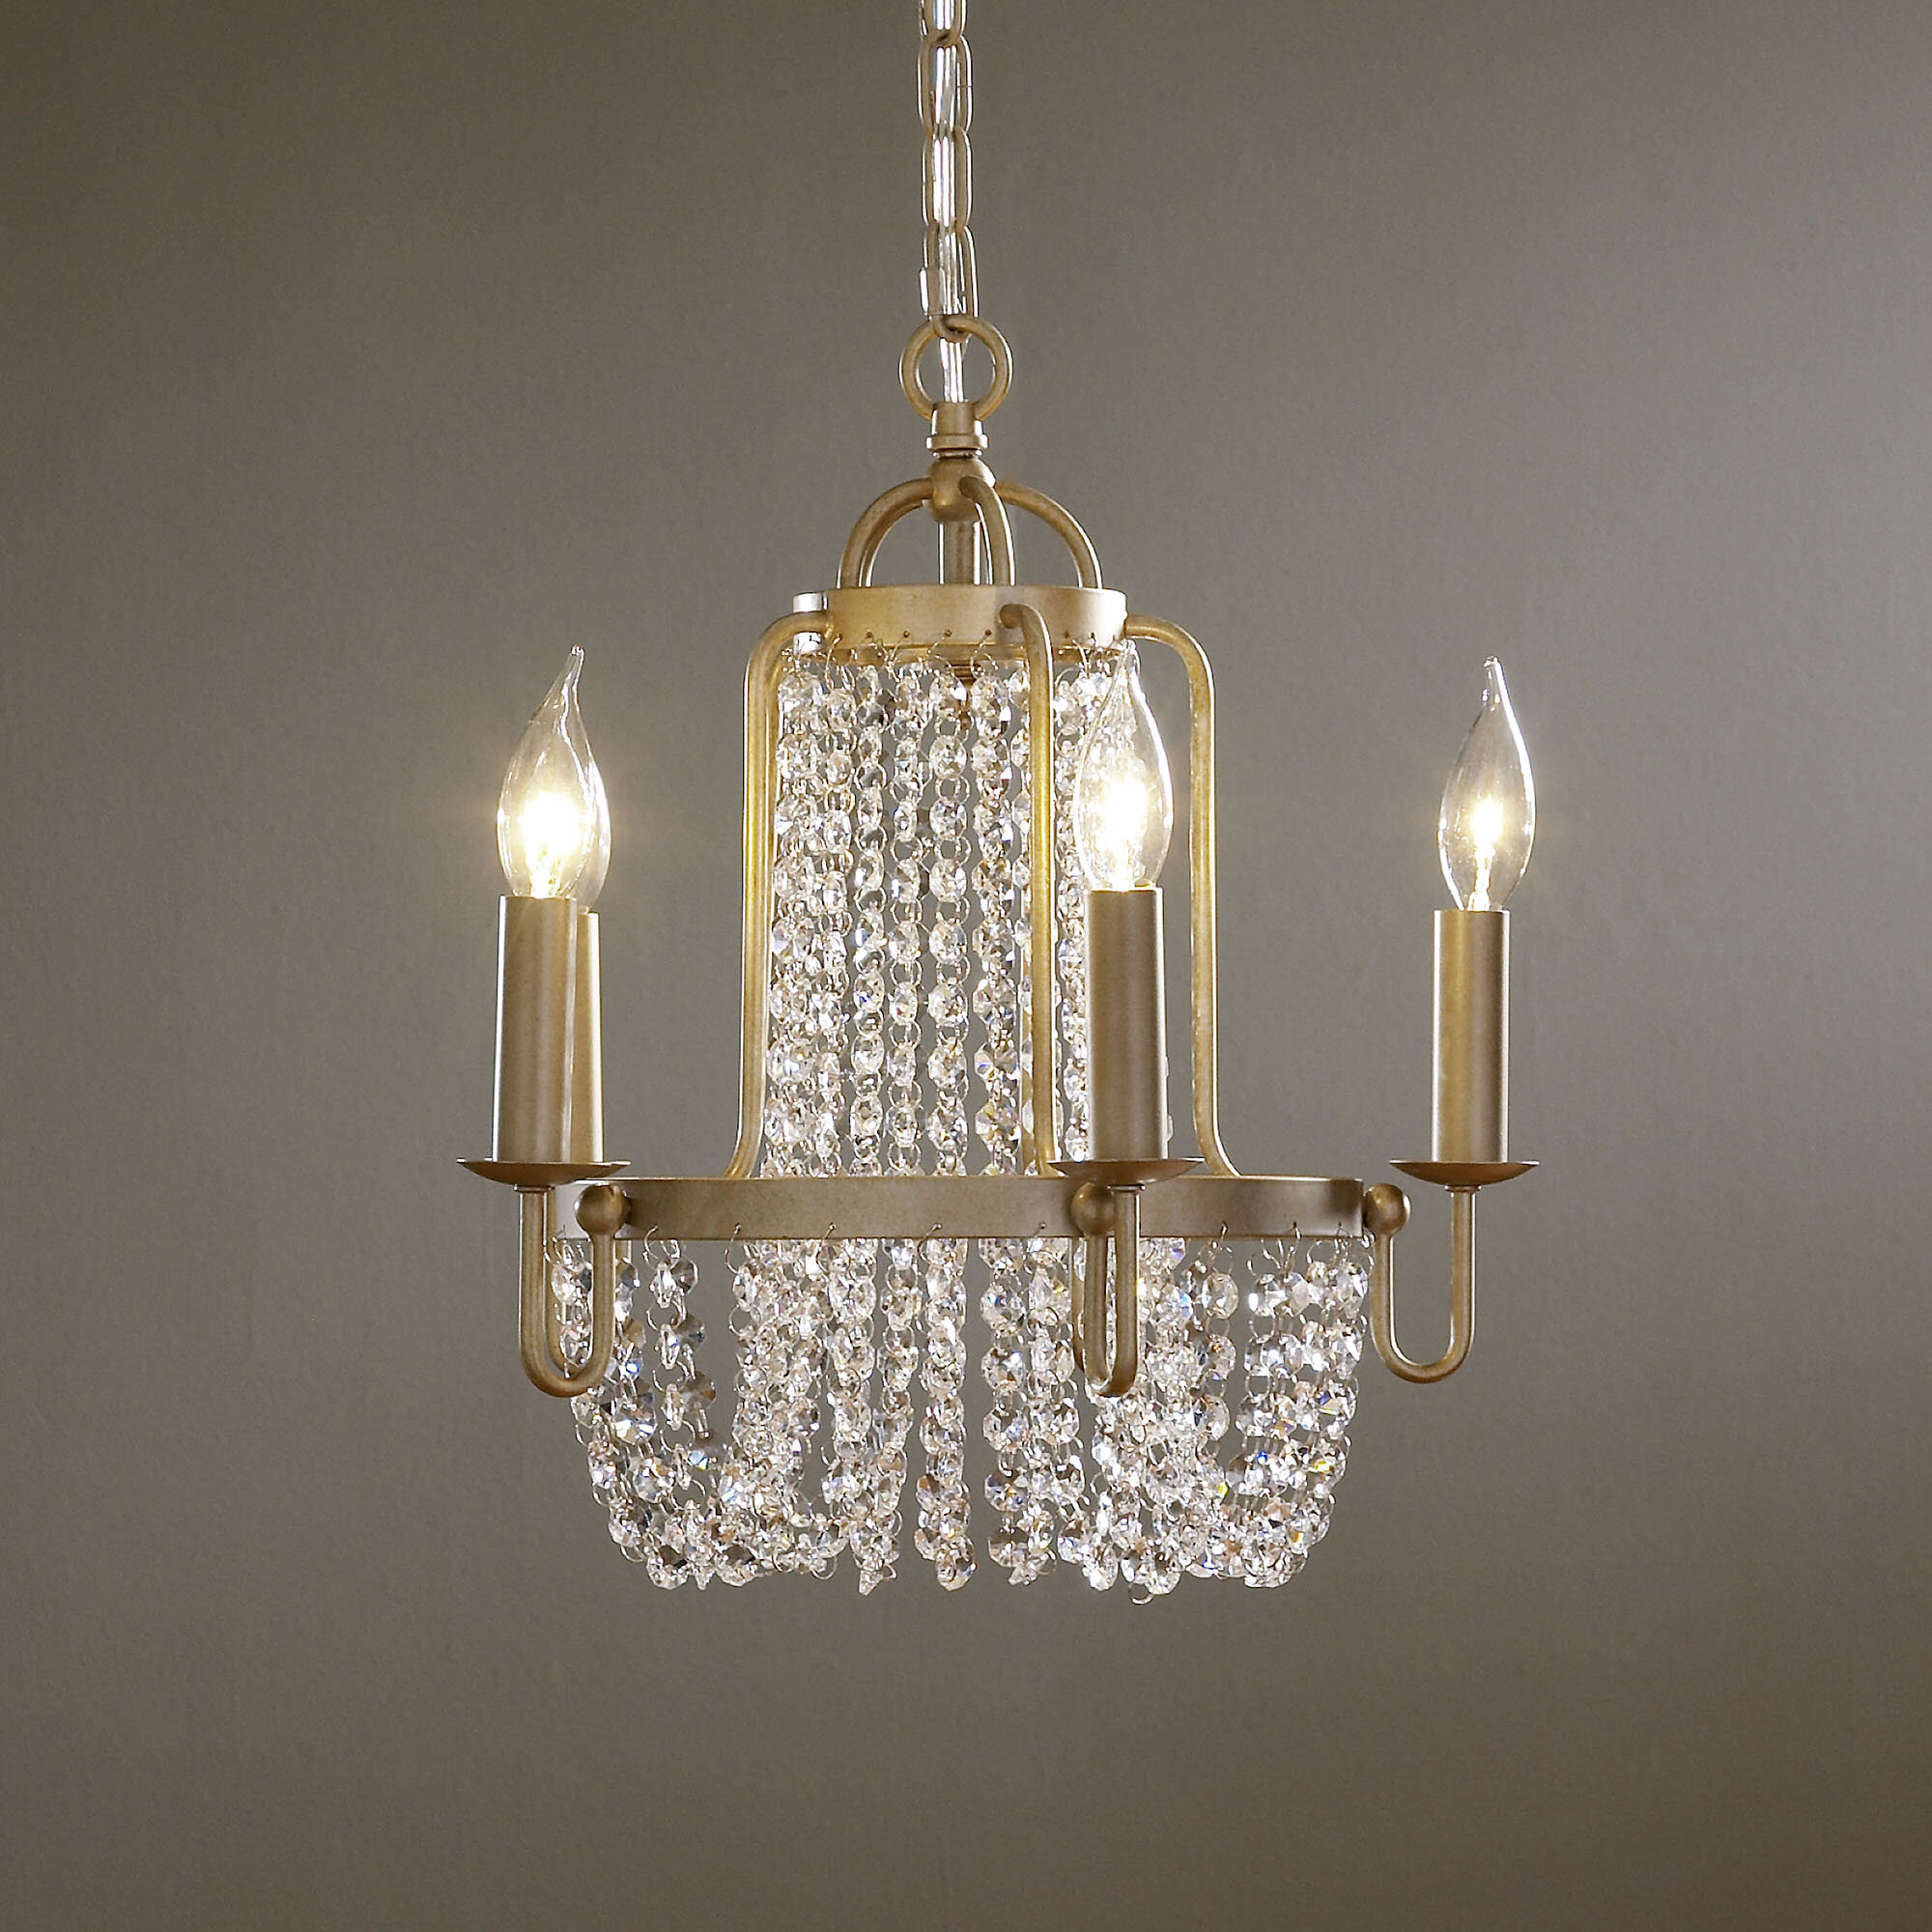 Ludlow 5 Light Crystal Chandelier & Reviews